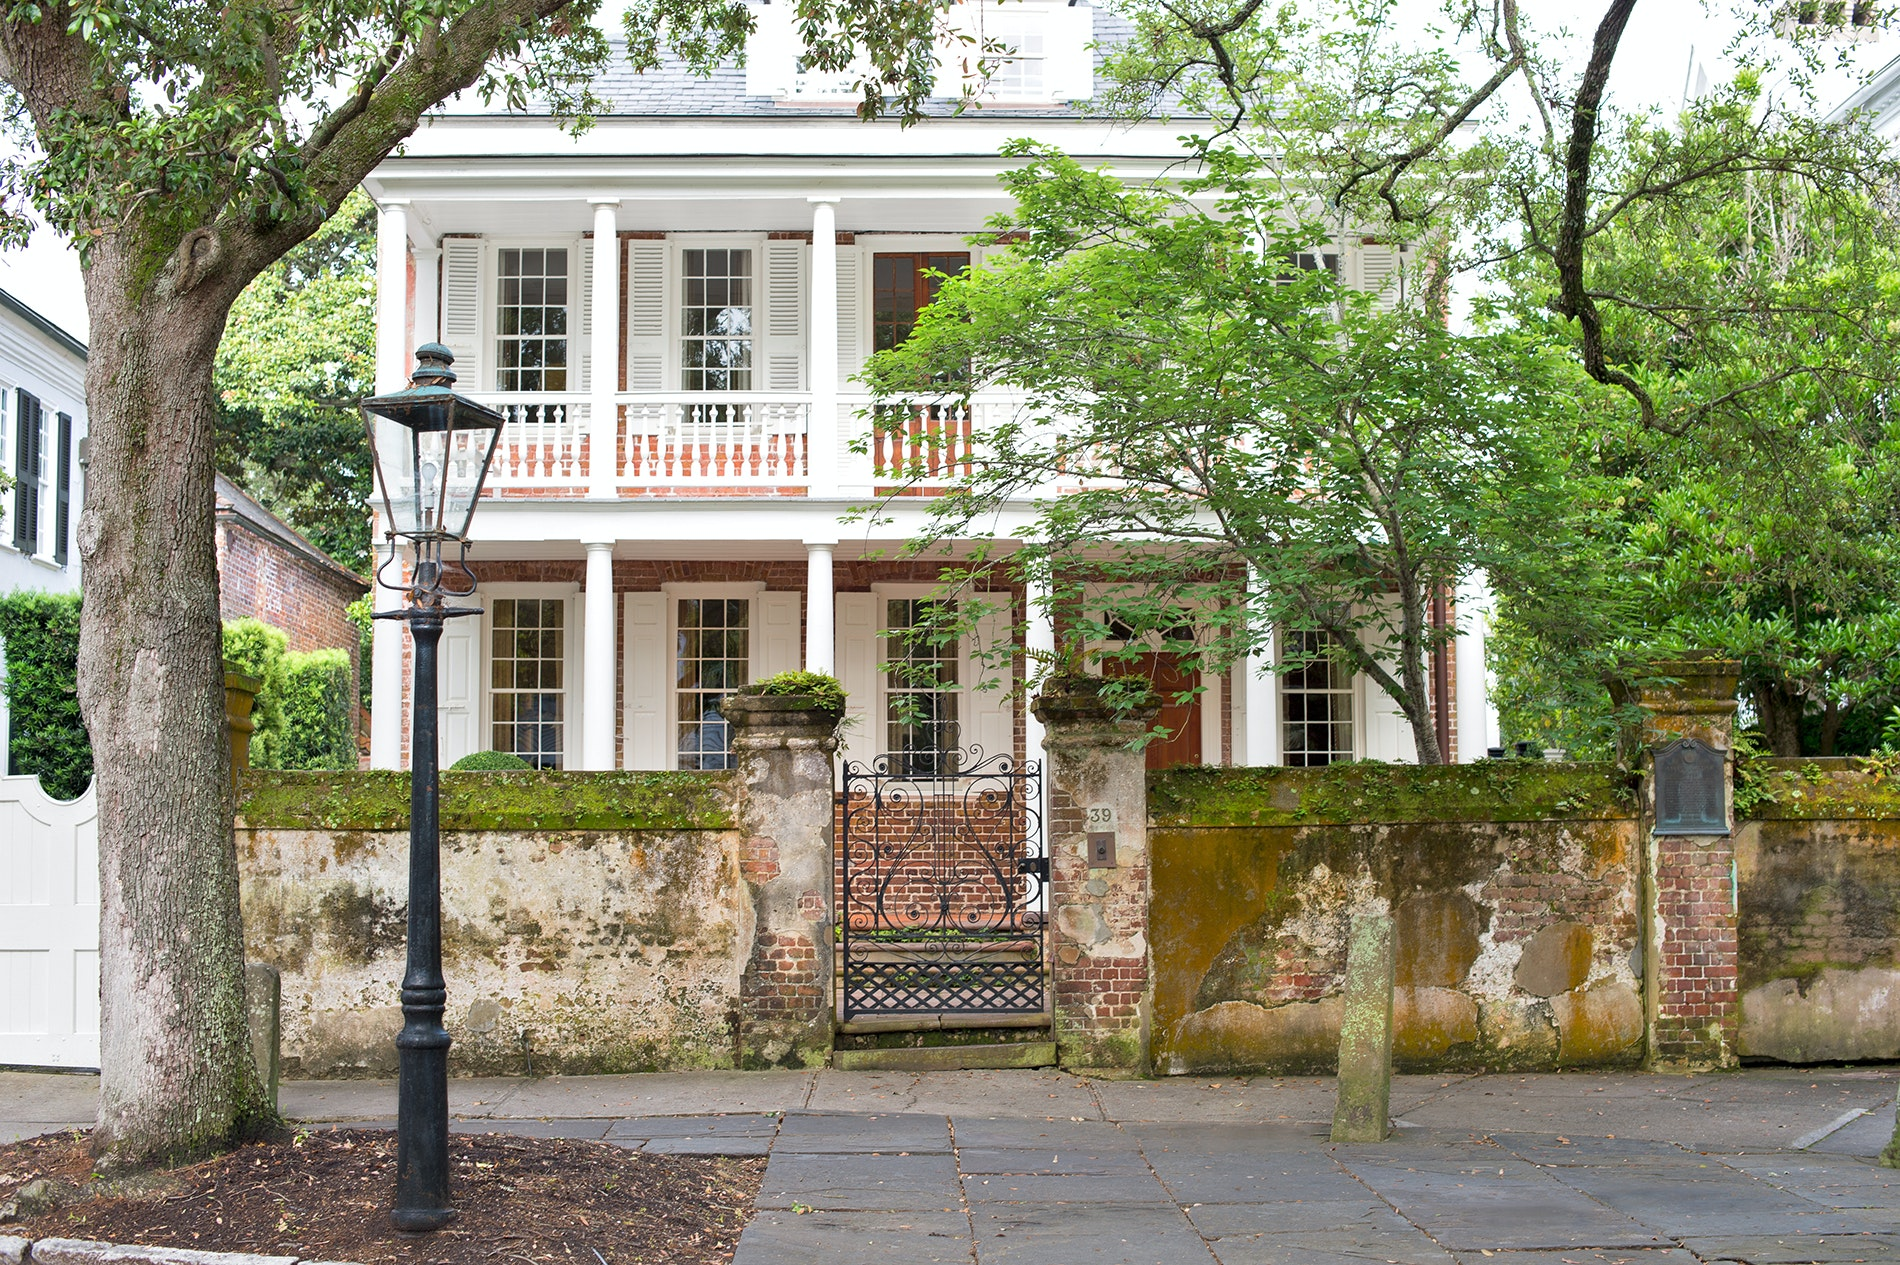 South Carolina's port city of Charleston was founded in 1670, and still has a recognizably historic French Quarter.